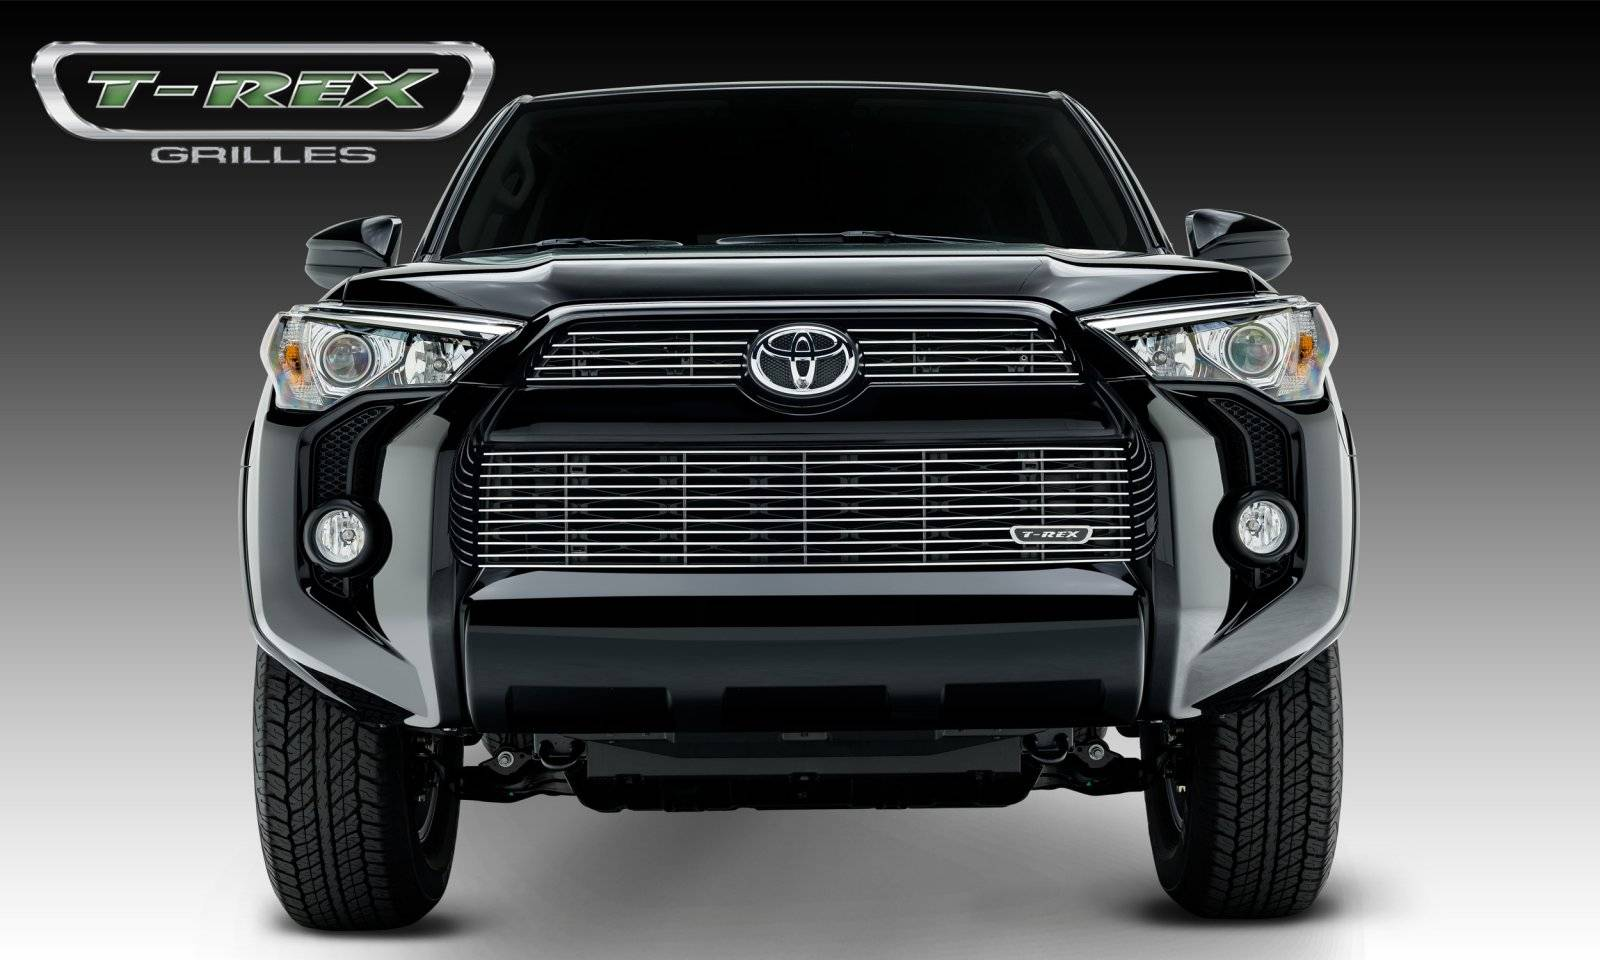 T-REX Grilles - Toyota 4 Runner Billet Grille, Main & Bumper, Overlay, 3 Pc's, Polished Powdercoated Aluminum Bars, Fits Trail & SR5 but not Limited - Pt # 21949